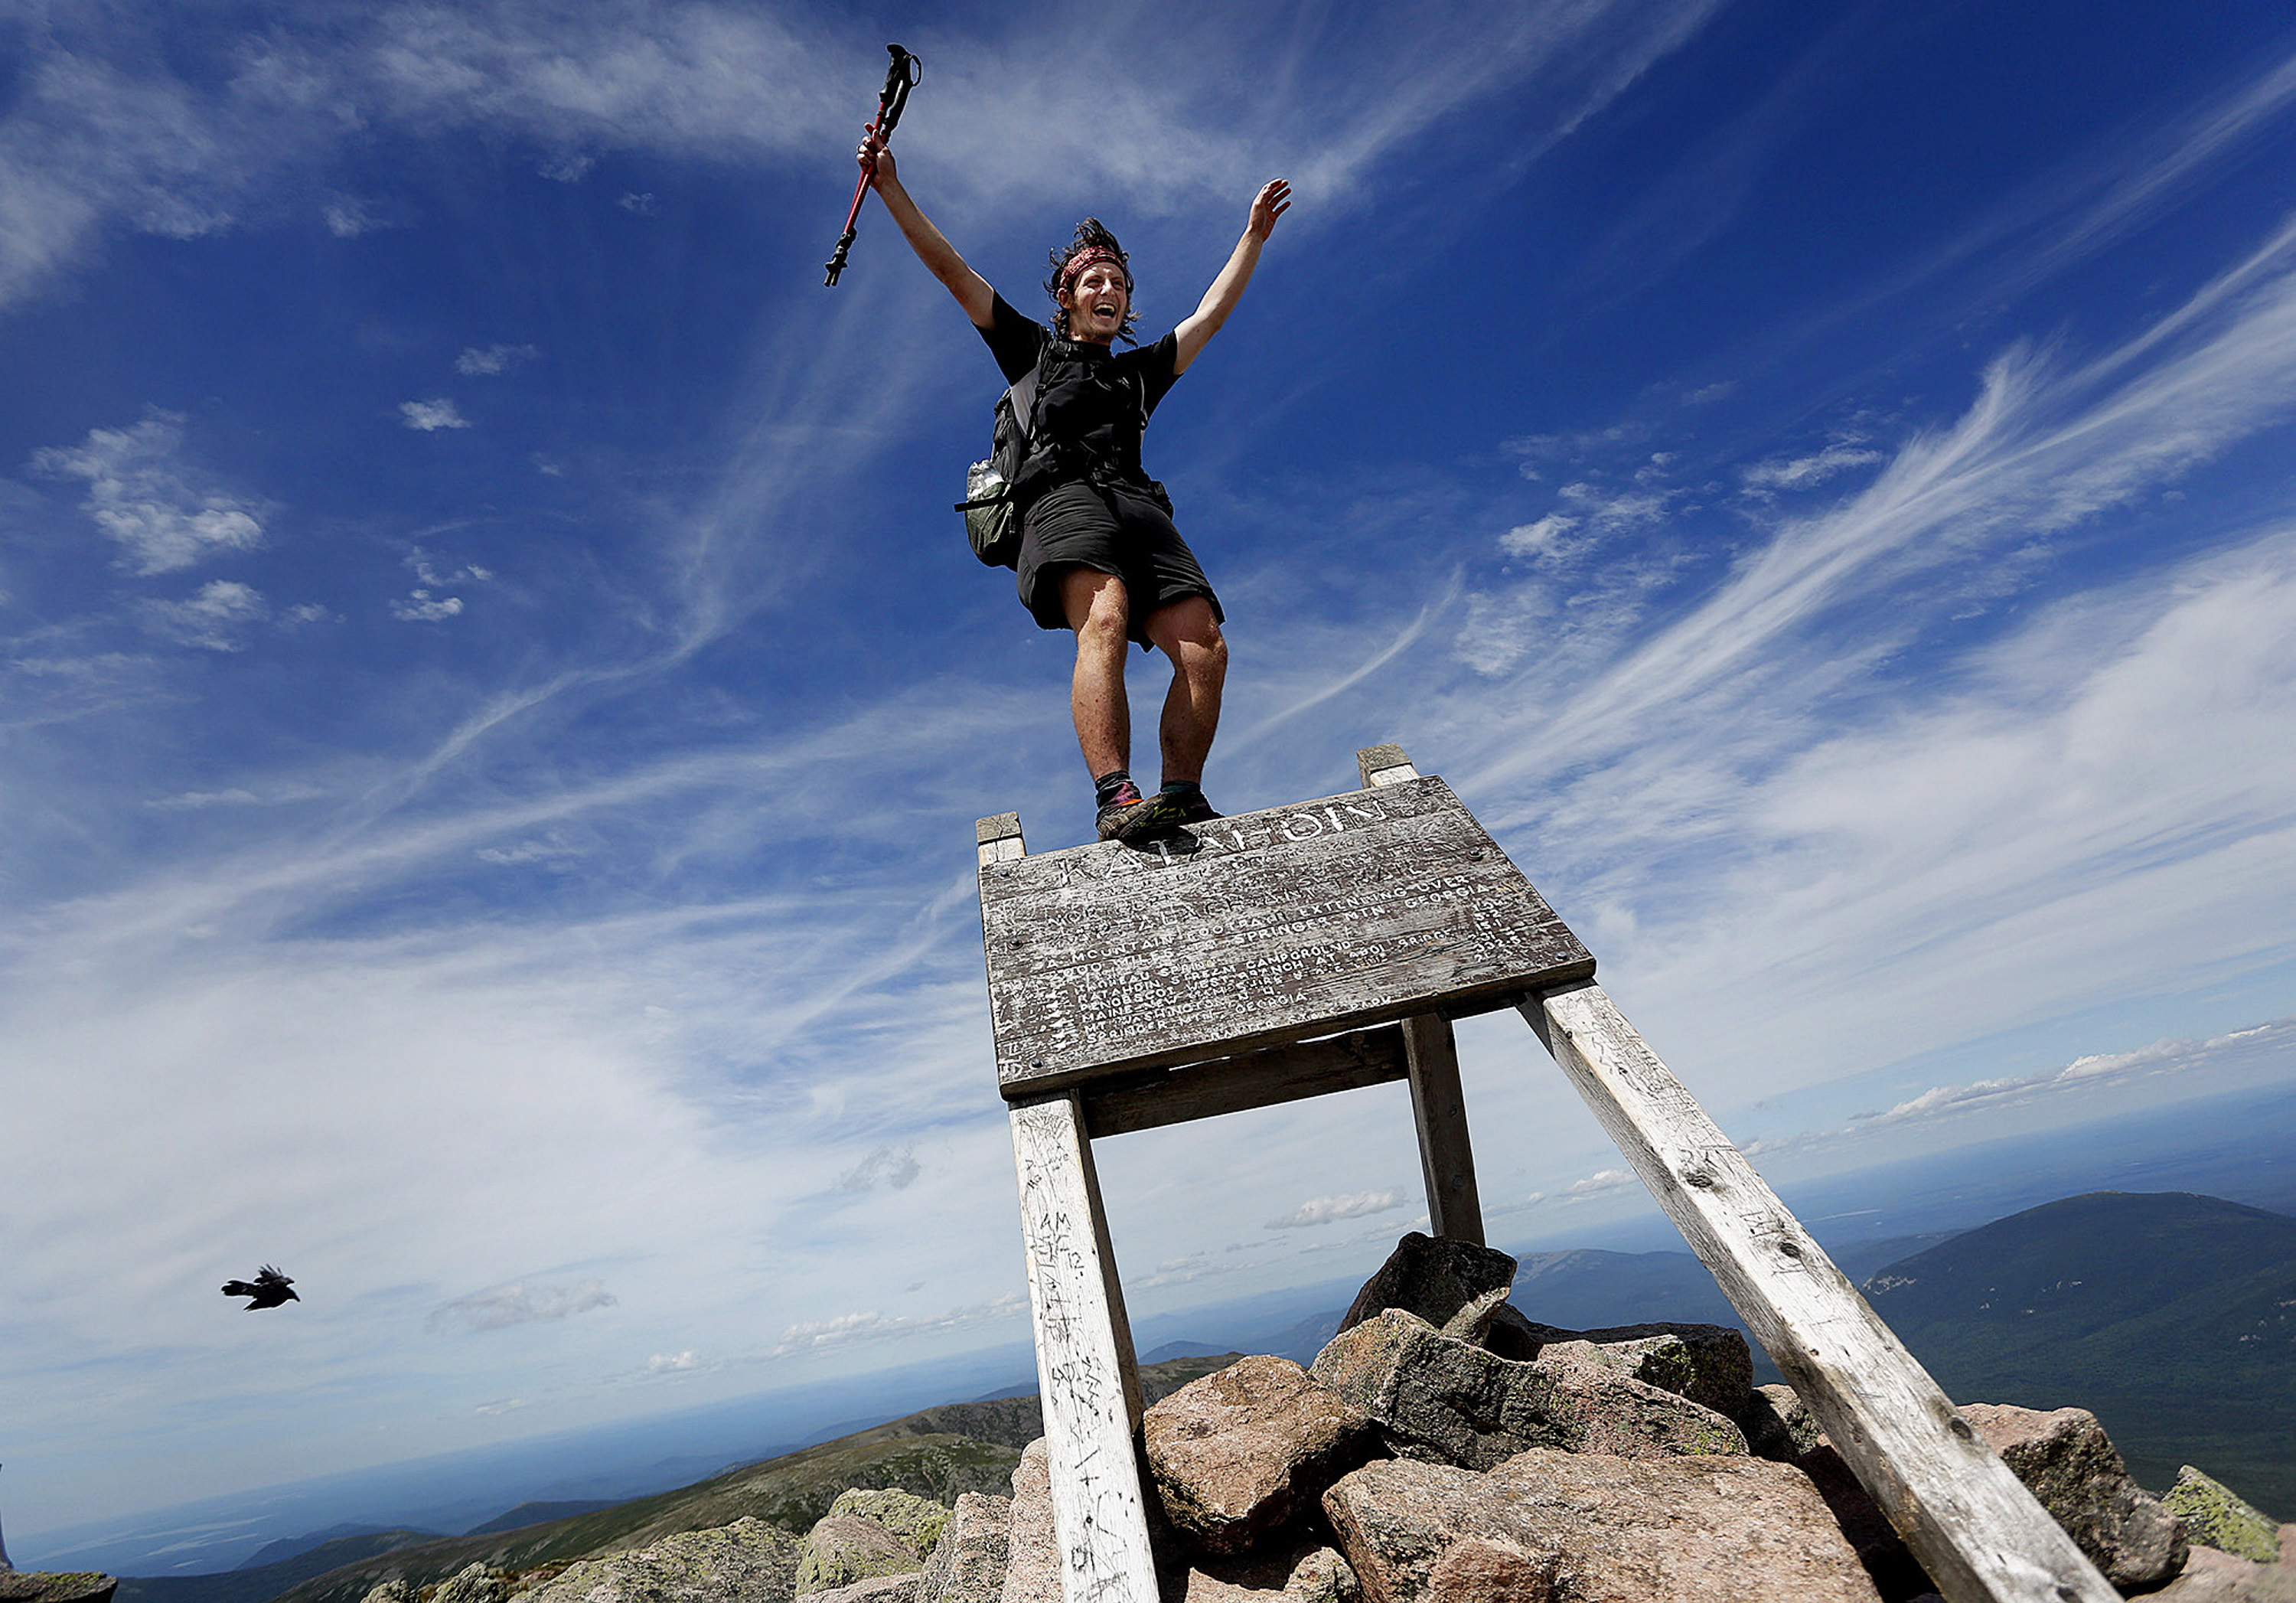 Baxter State Park pushes back on rising number of Appalachian Trail 'thru-hikers'